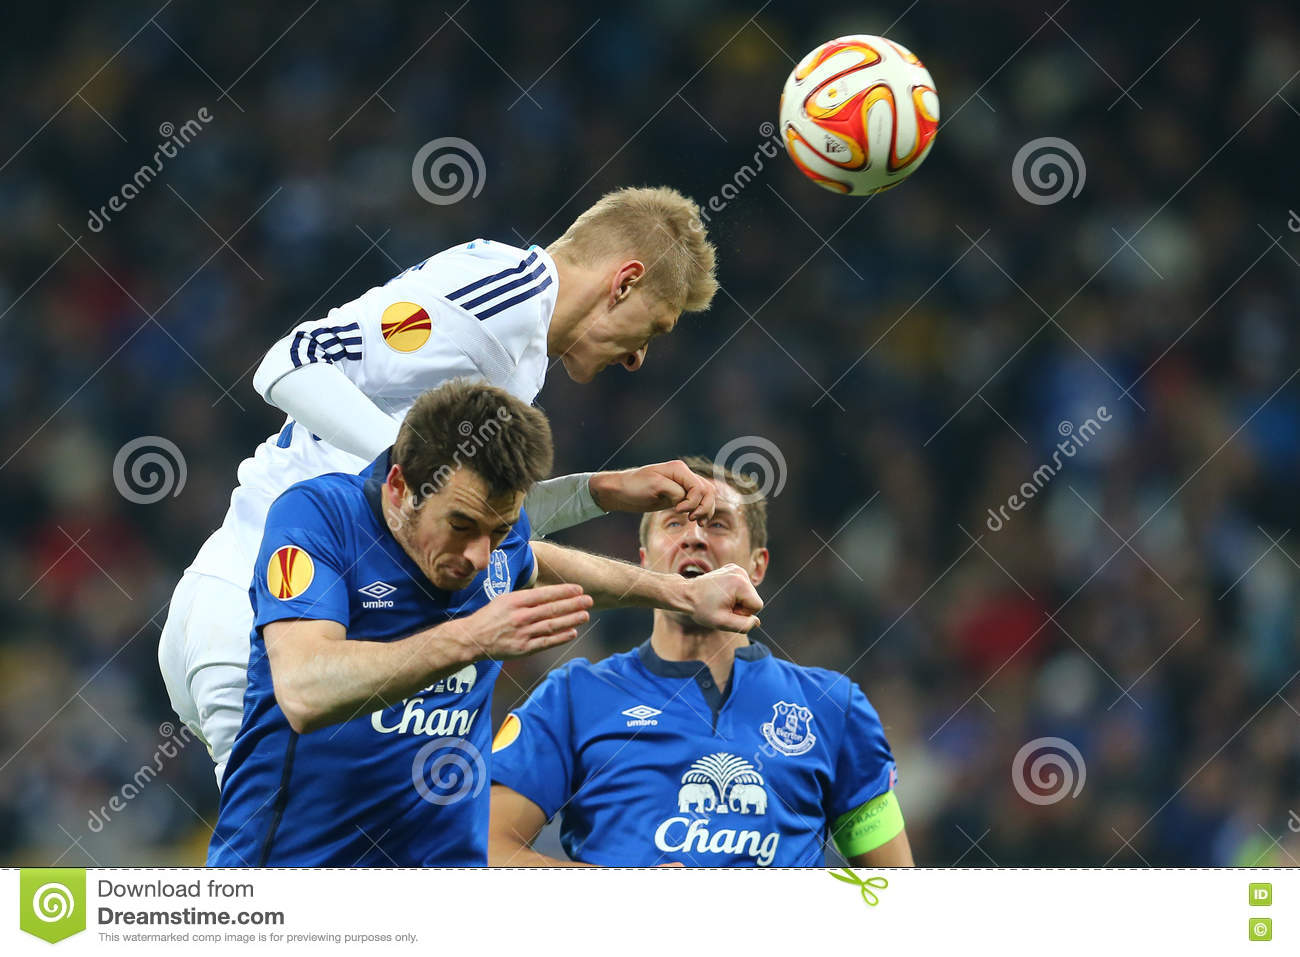 Lukasz Teodorczyk powerful header, UEFA Europa League Round of 16 second leg match between Dynamo and Everton